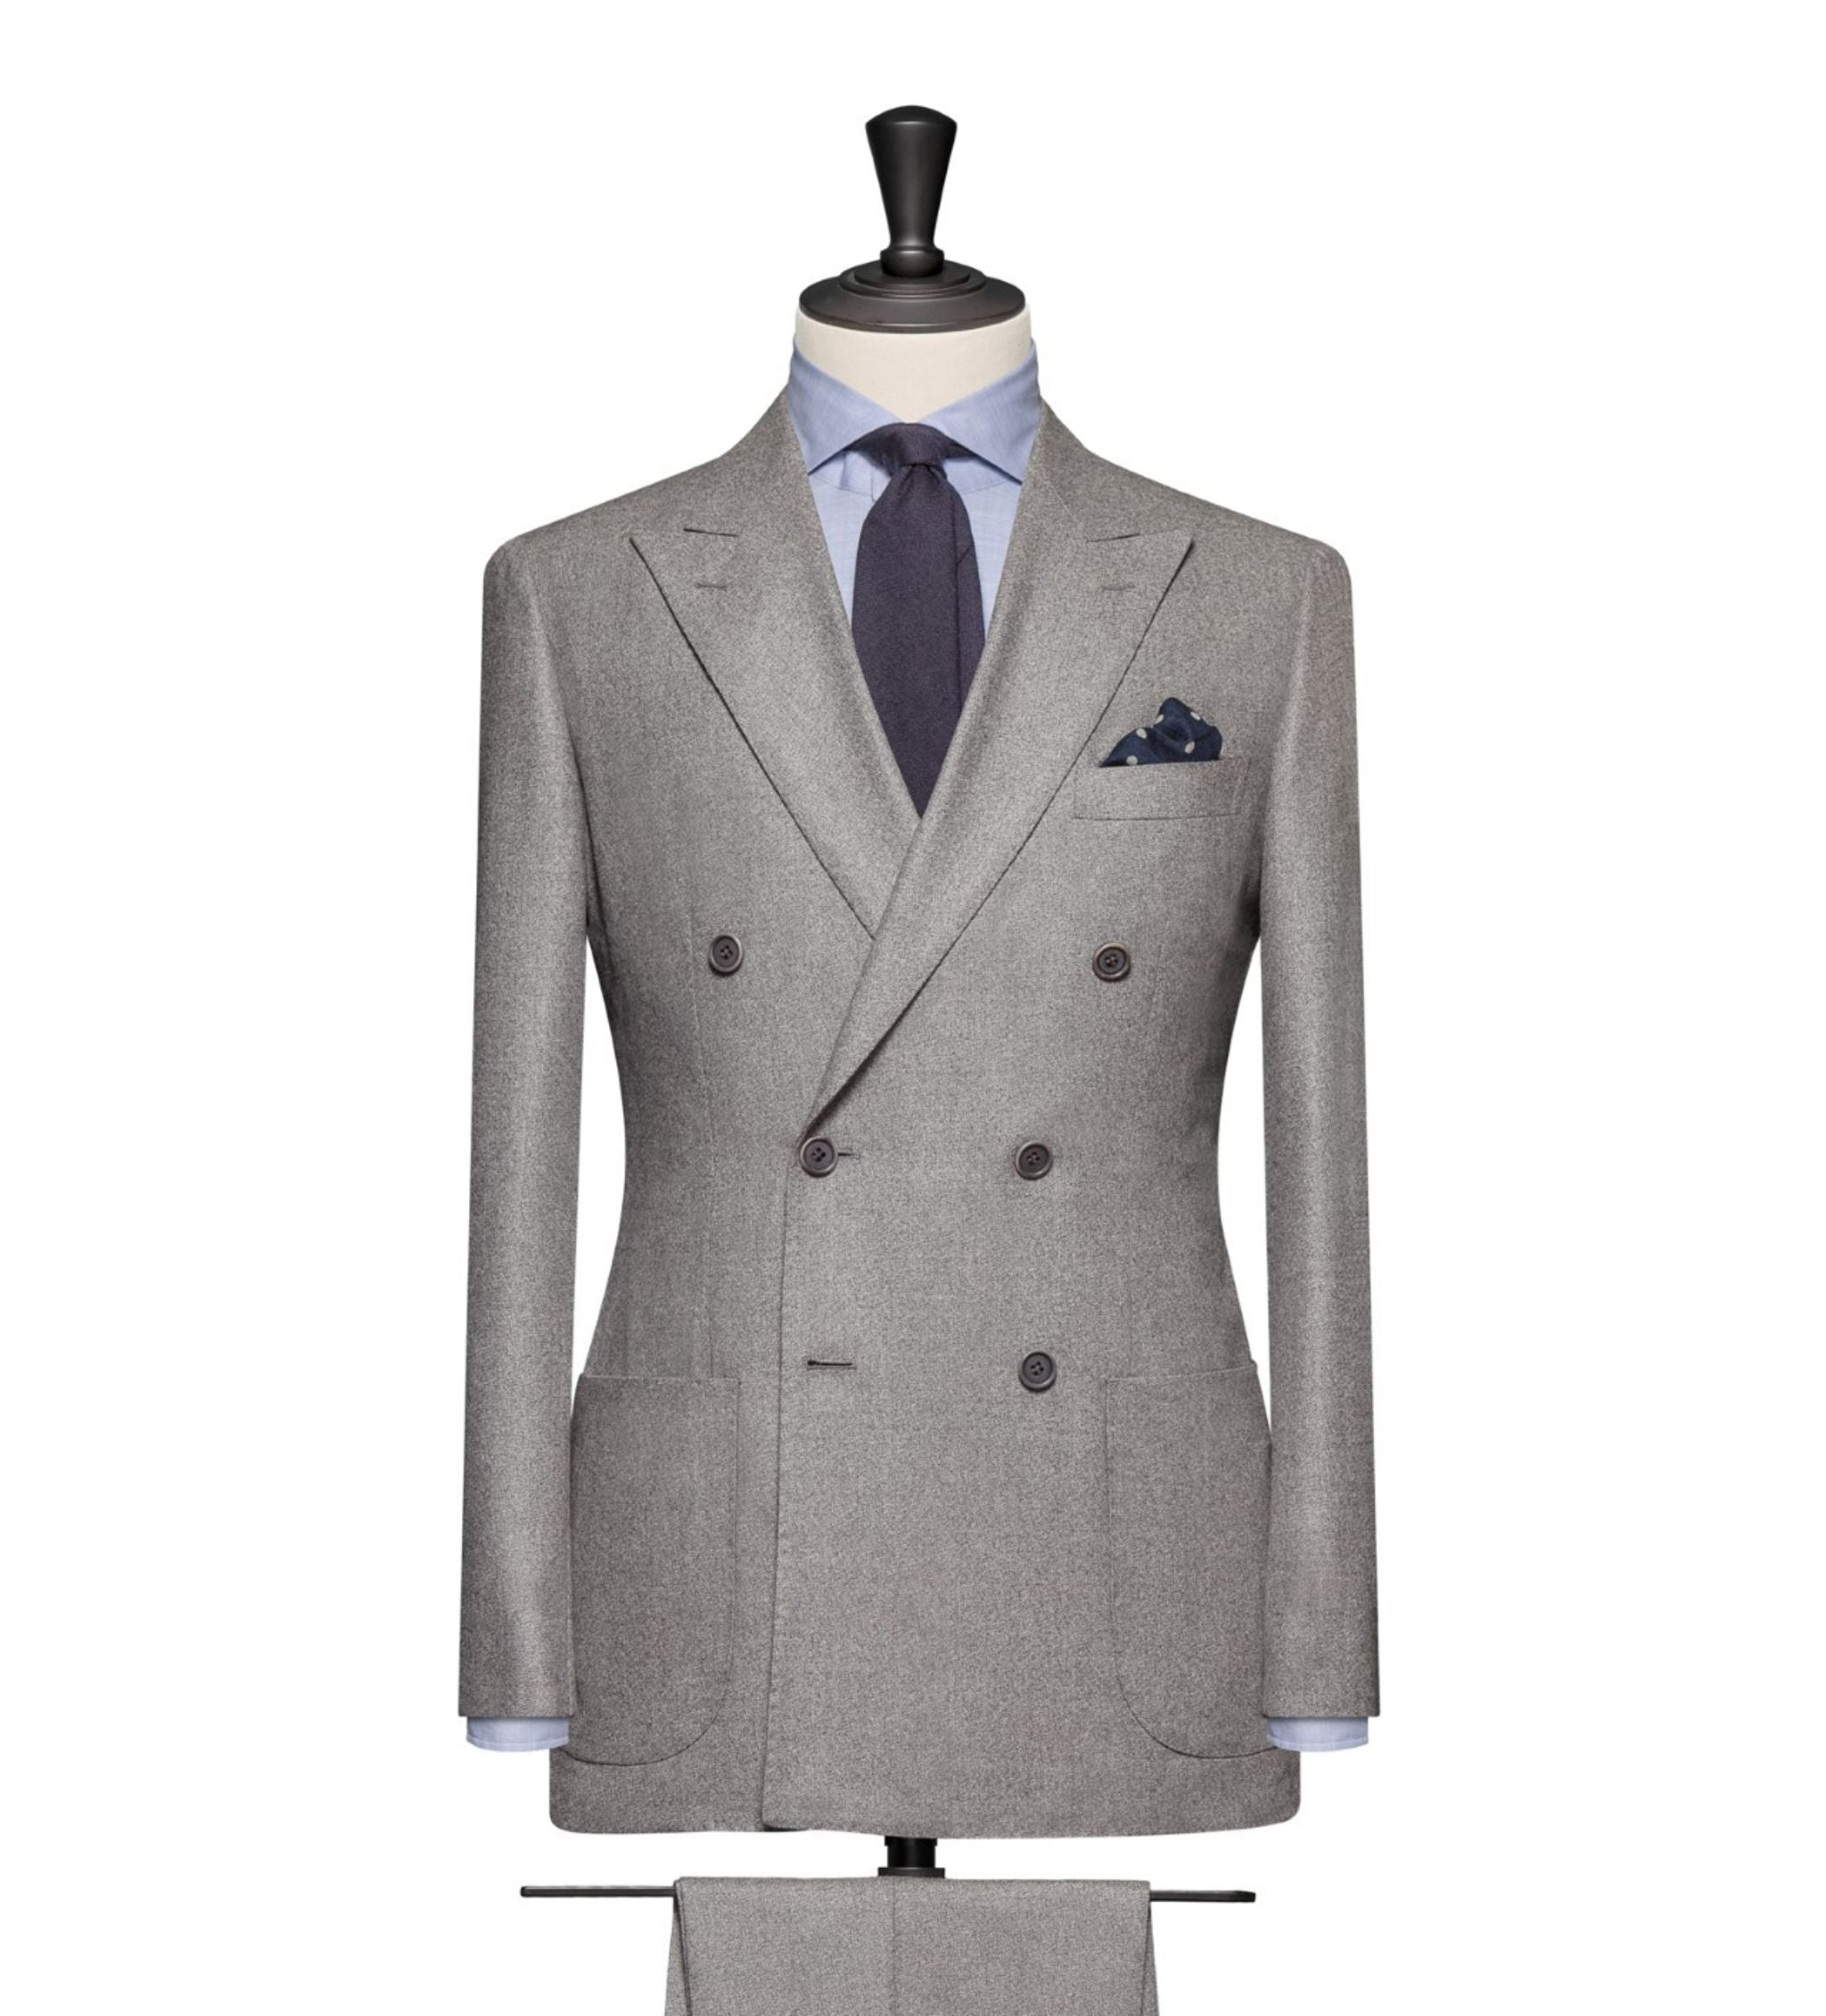 How to combine suits and sport coats - double-breasted gray flannel suit